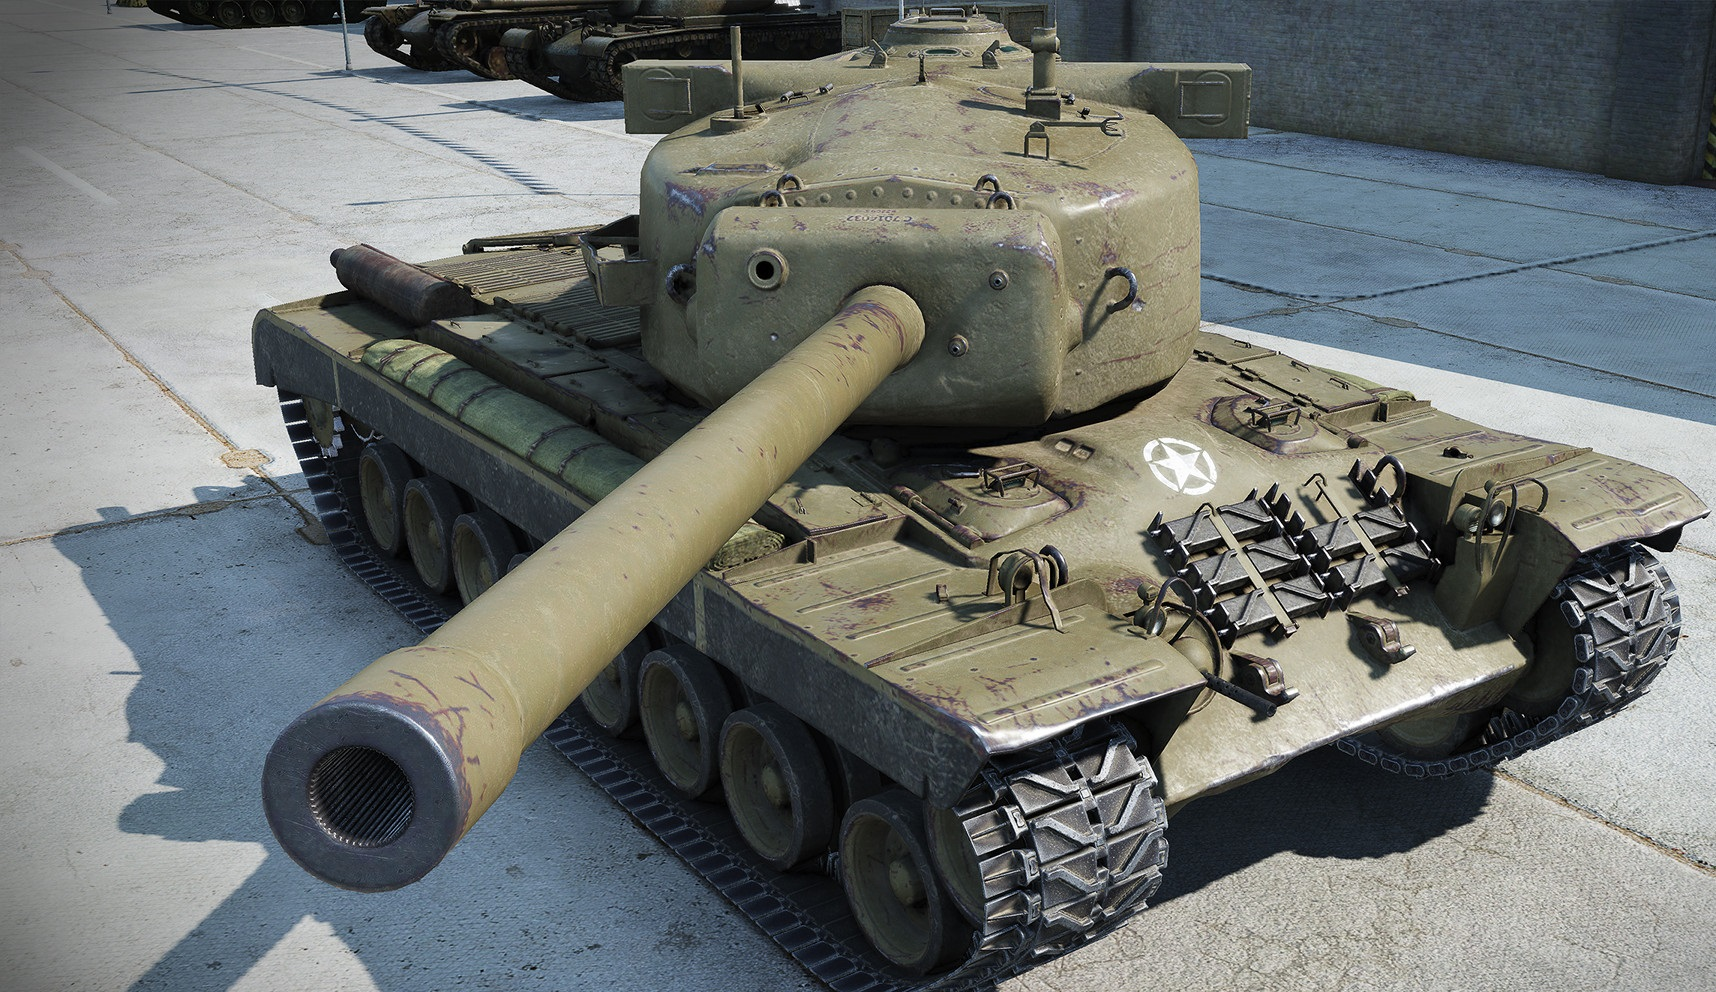 Best Tanks to Go Hull Down with in World of Tanks | AllGamers